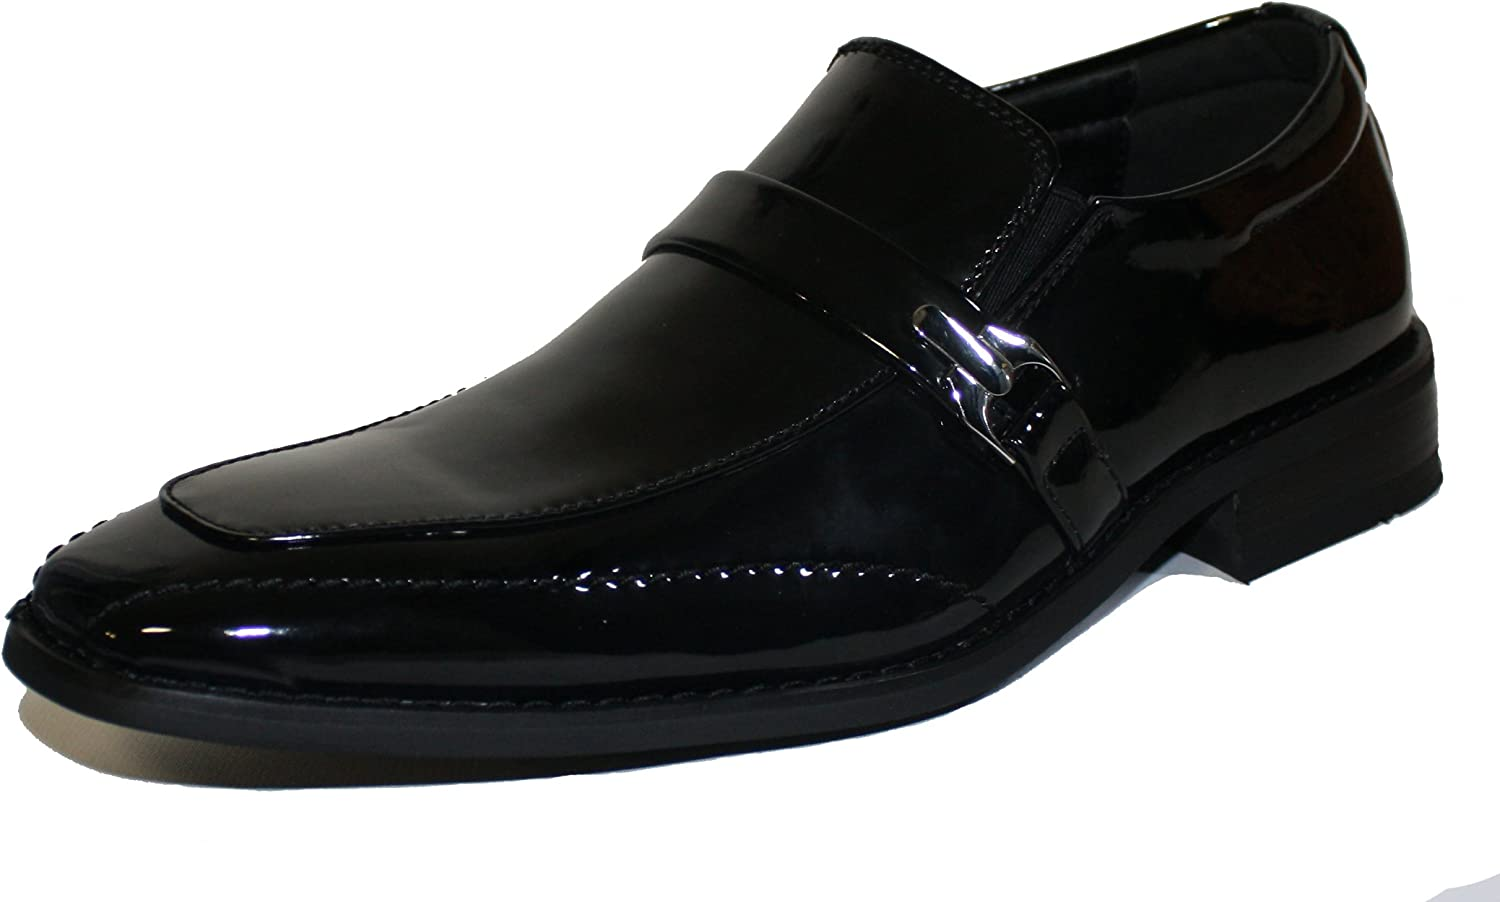 Faranzi F4691 Patent Leather Tuxedo Strap and Buckle Slip-on Loafer Oxford shoes for Men Dress shoes